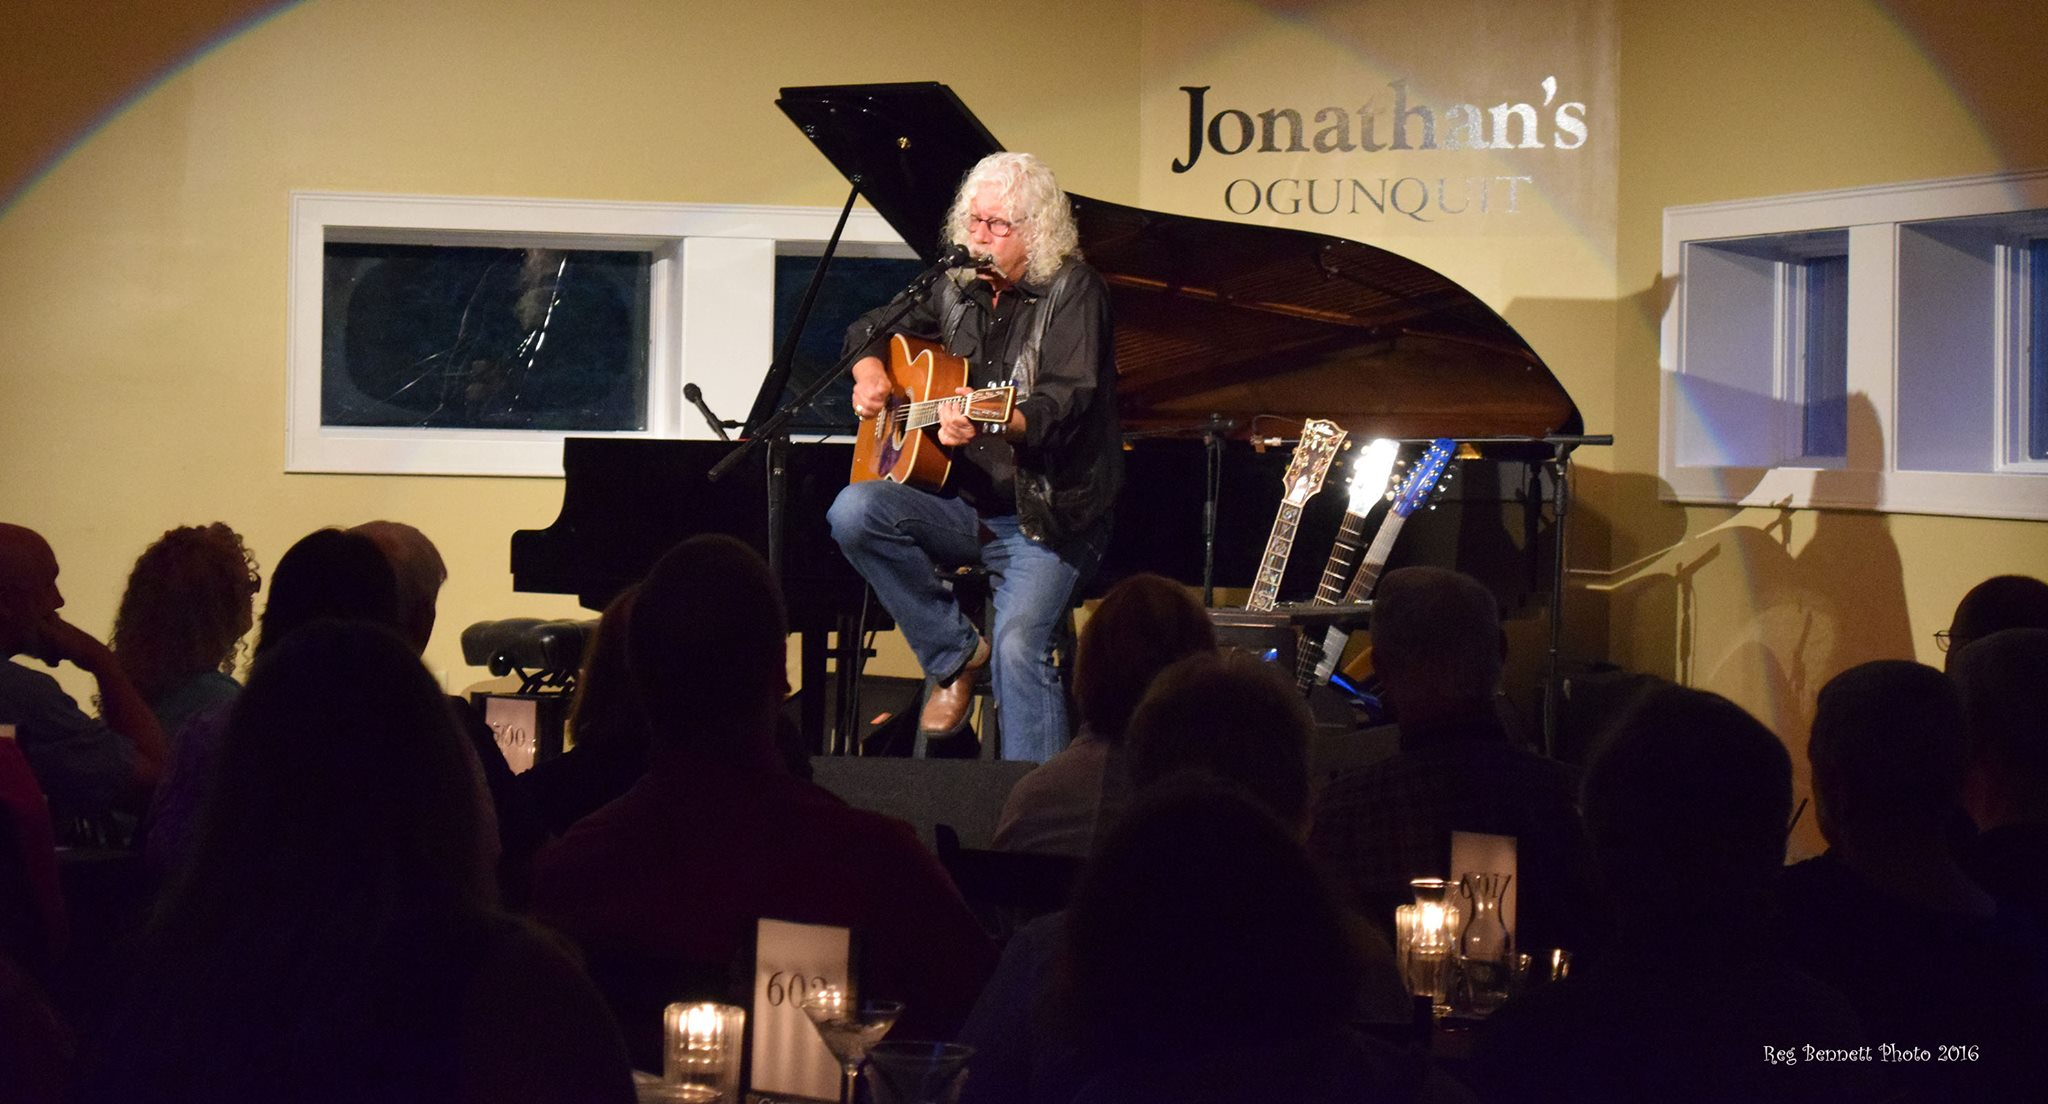 Arlo Guthrie performs at Jonathan's Restaurant in Ogunquit, Maine.